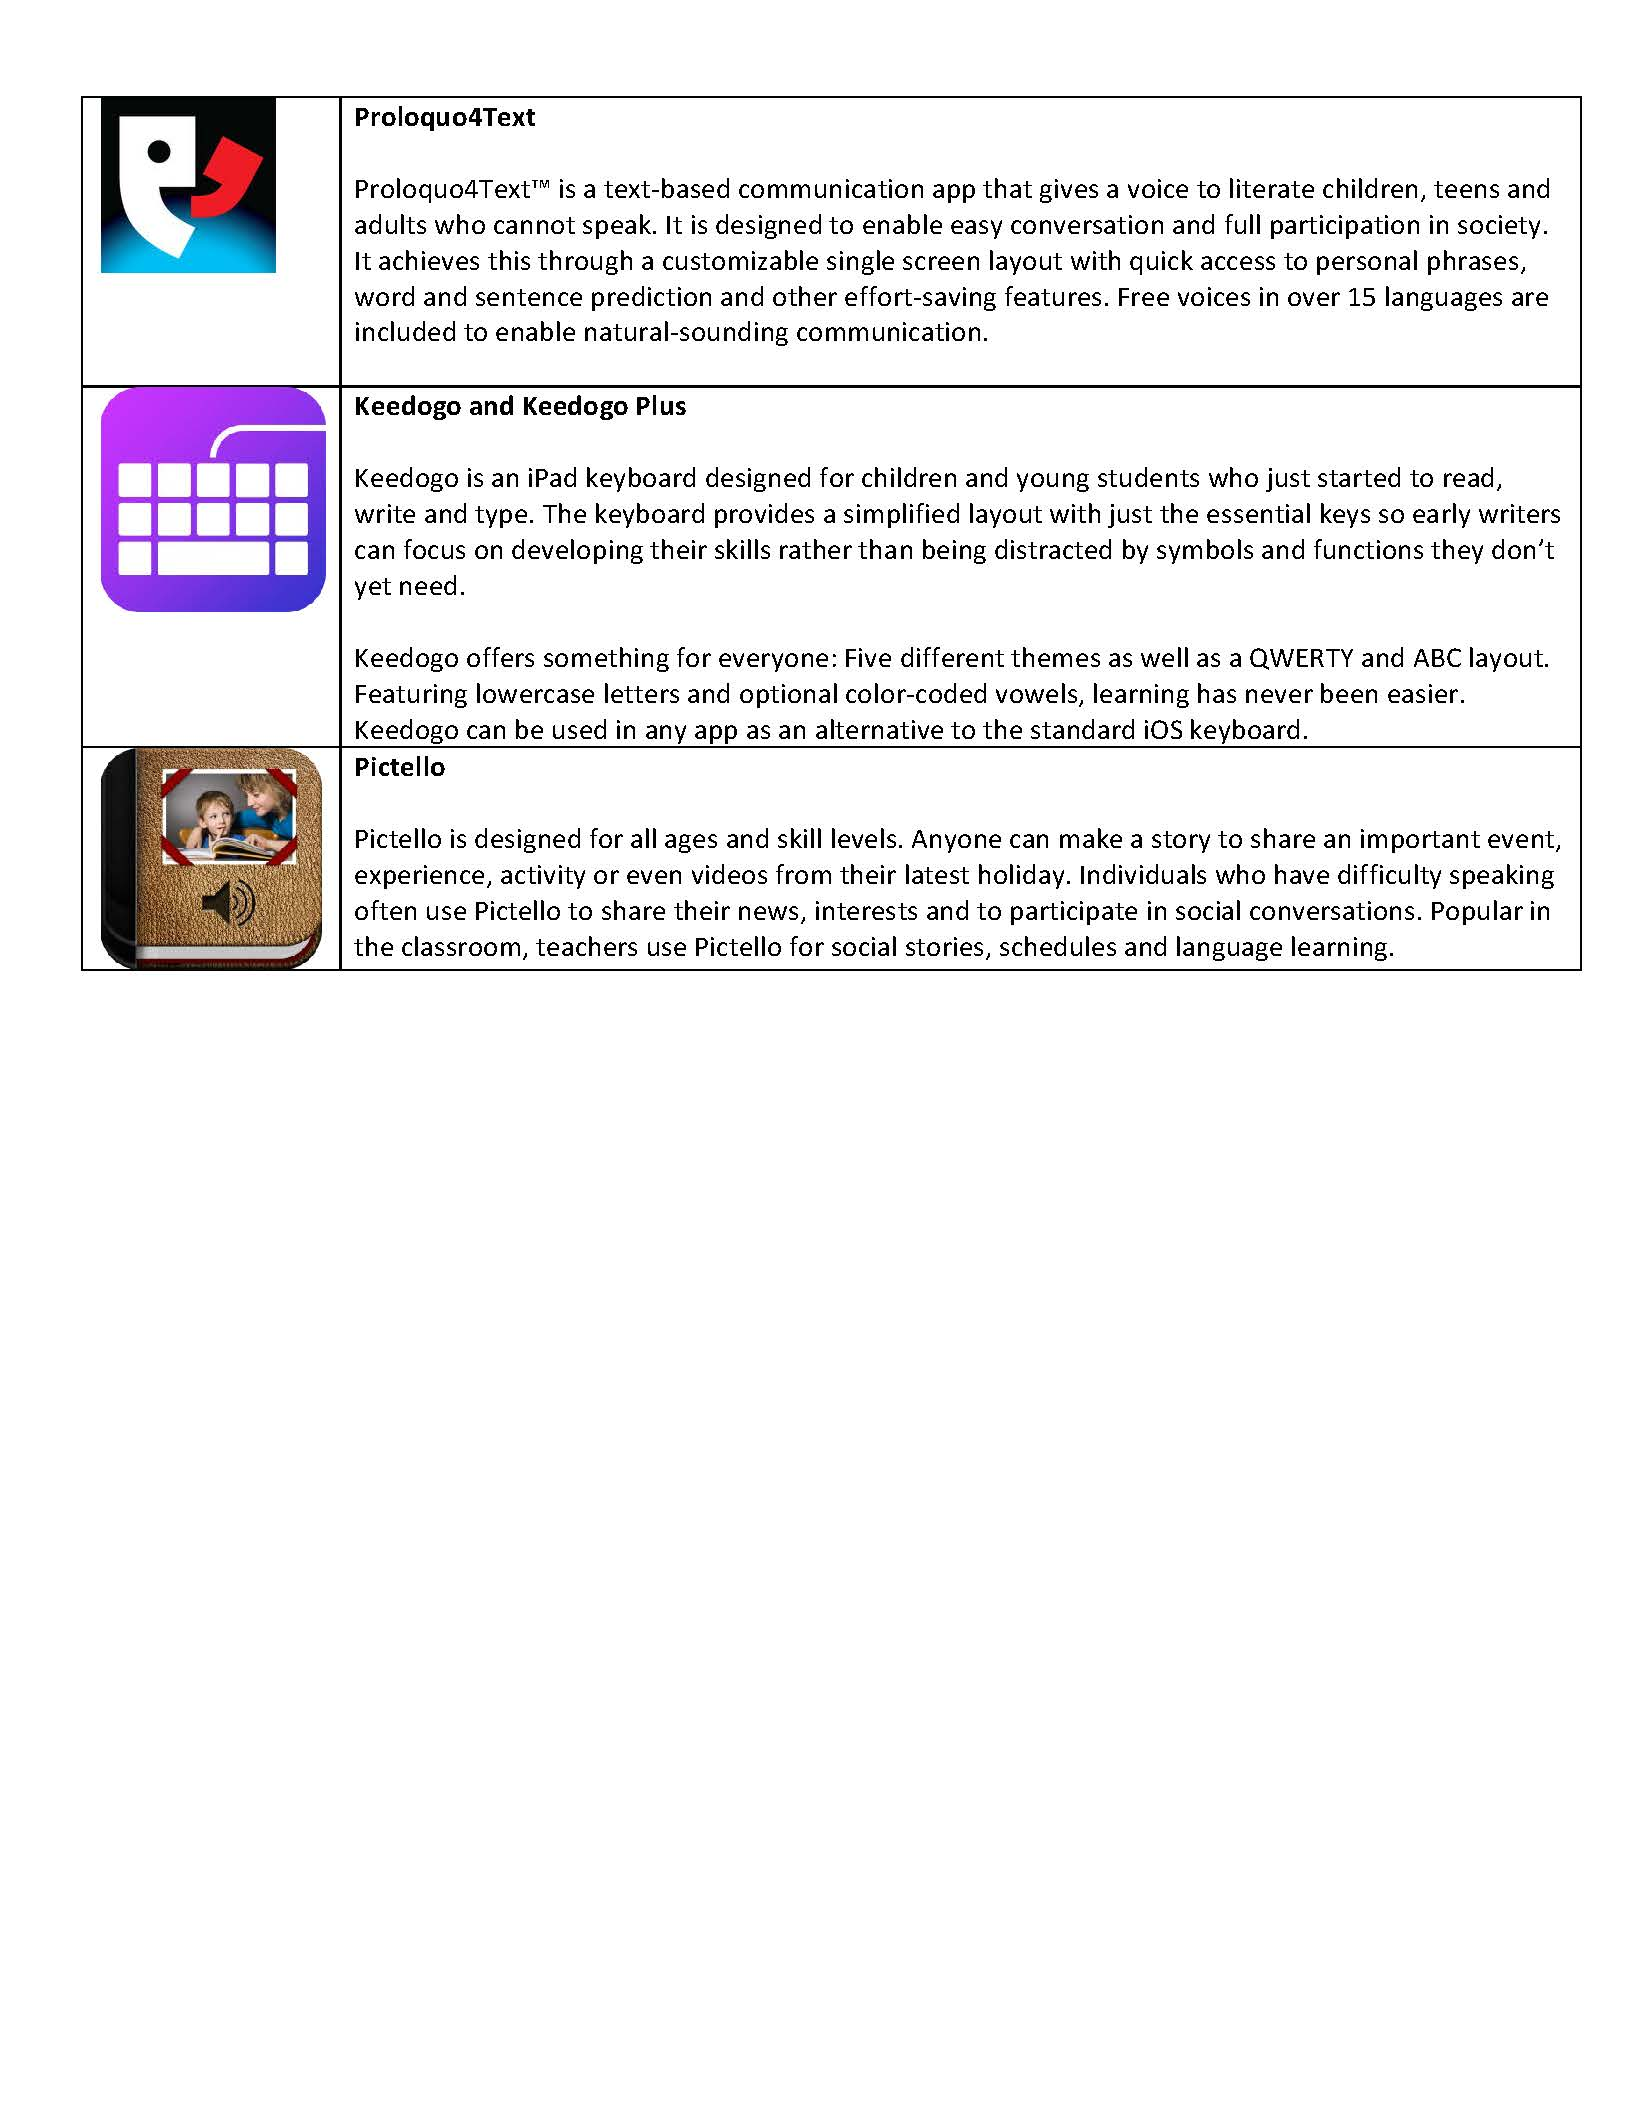 List Of Paid Apps Available On The Ipadpage4